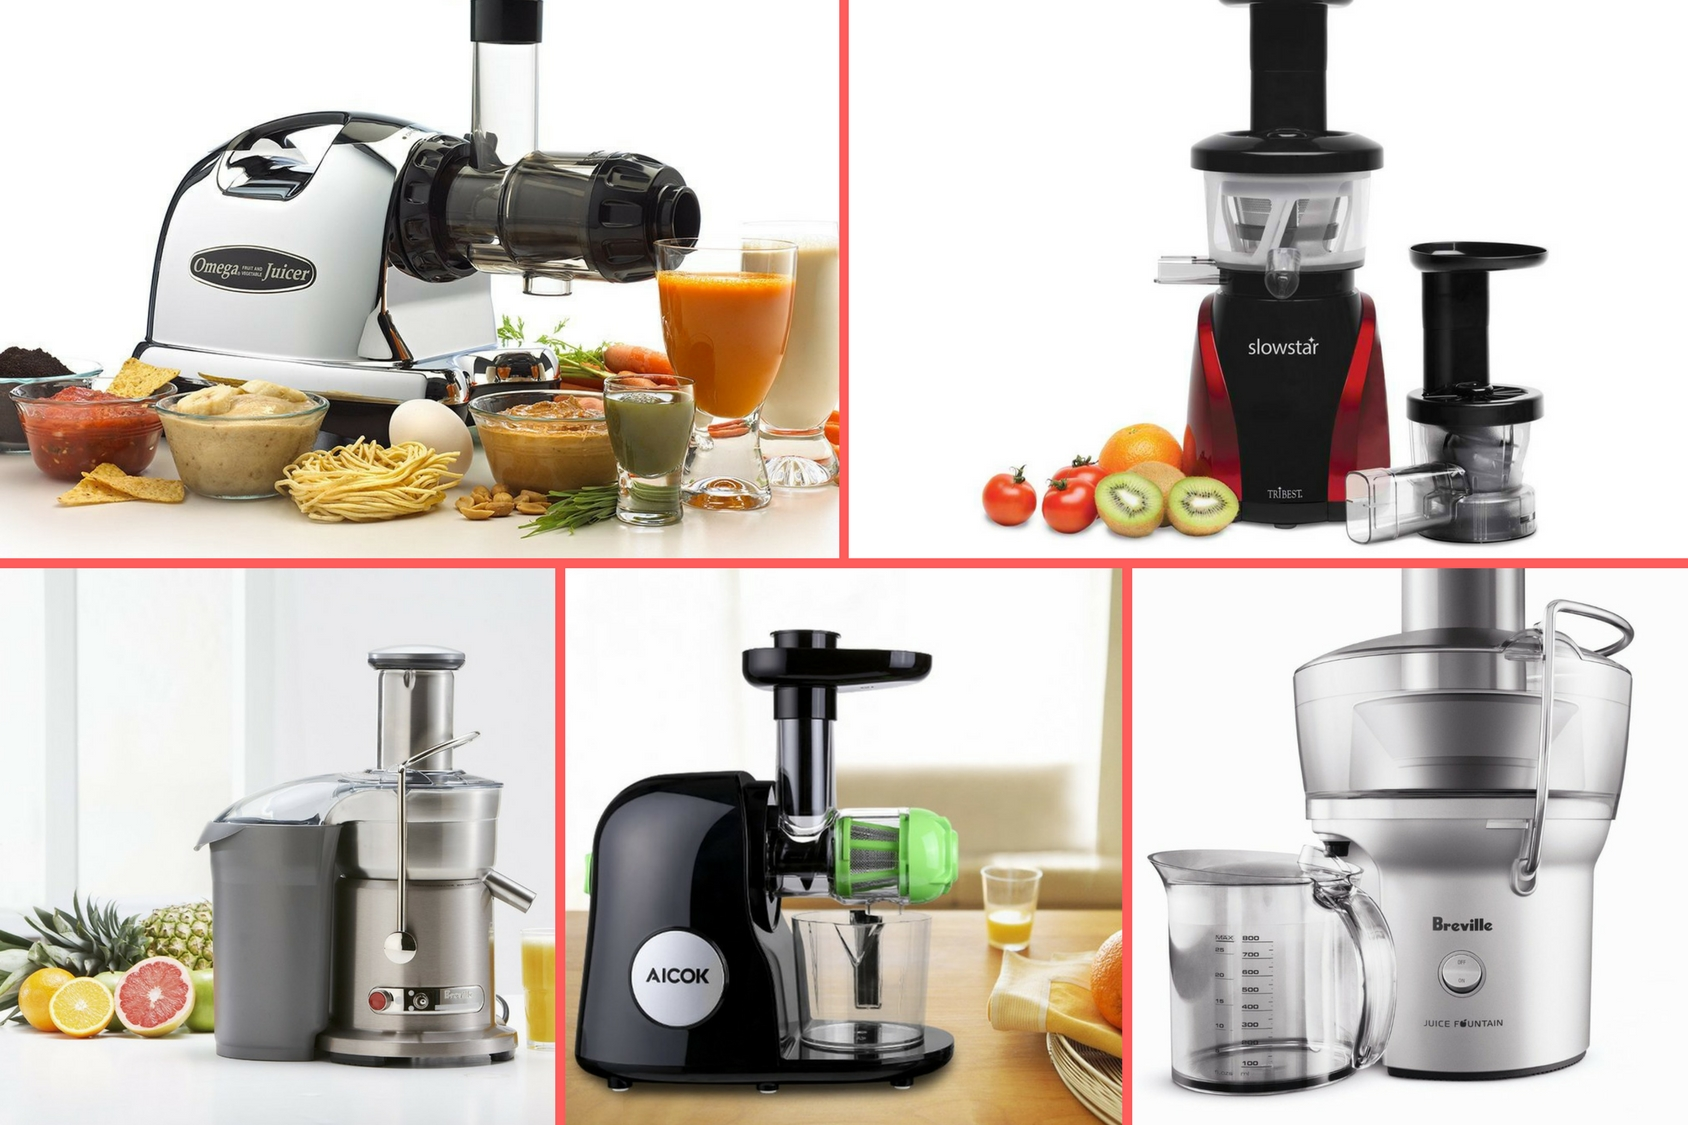 Best Masticating Juice Recipes : Best Juicer Reviews Of 2017 ~ The Juice Authority